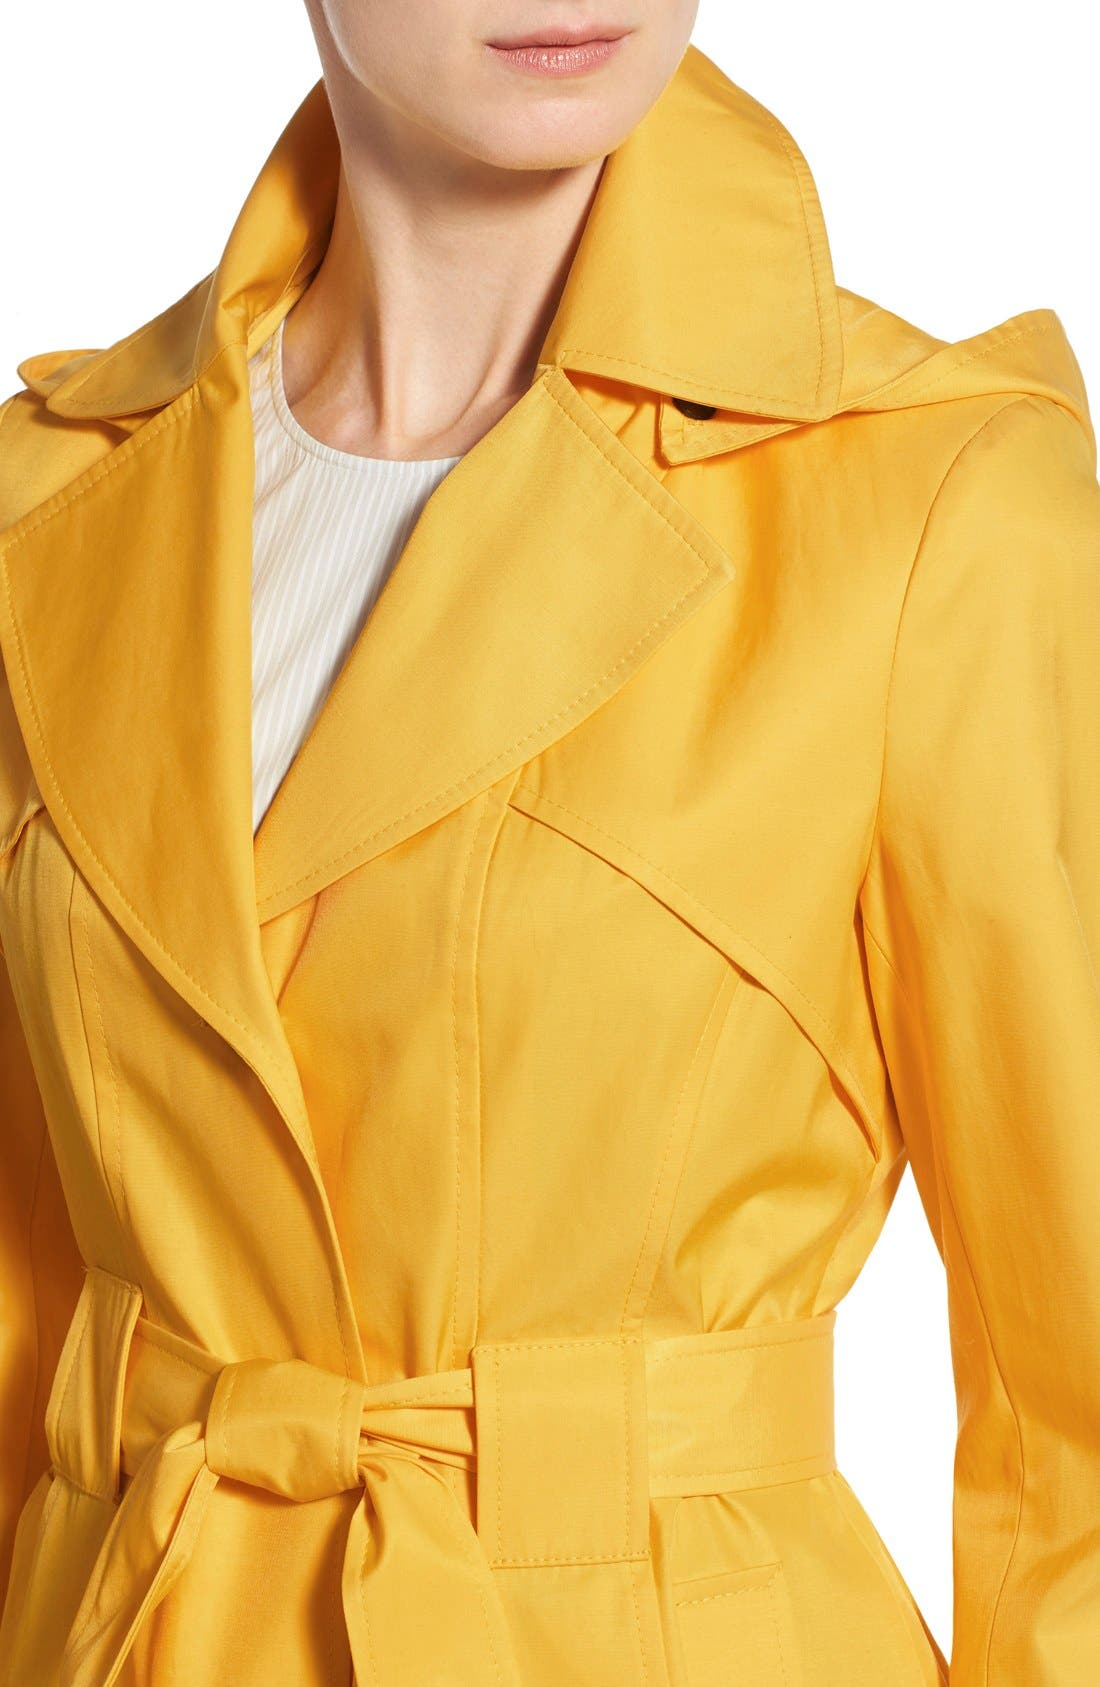 'Scarpa' Hooded Single Breasted Trench Coat,                             Alternate thumbnail 24, color,